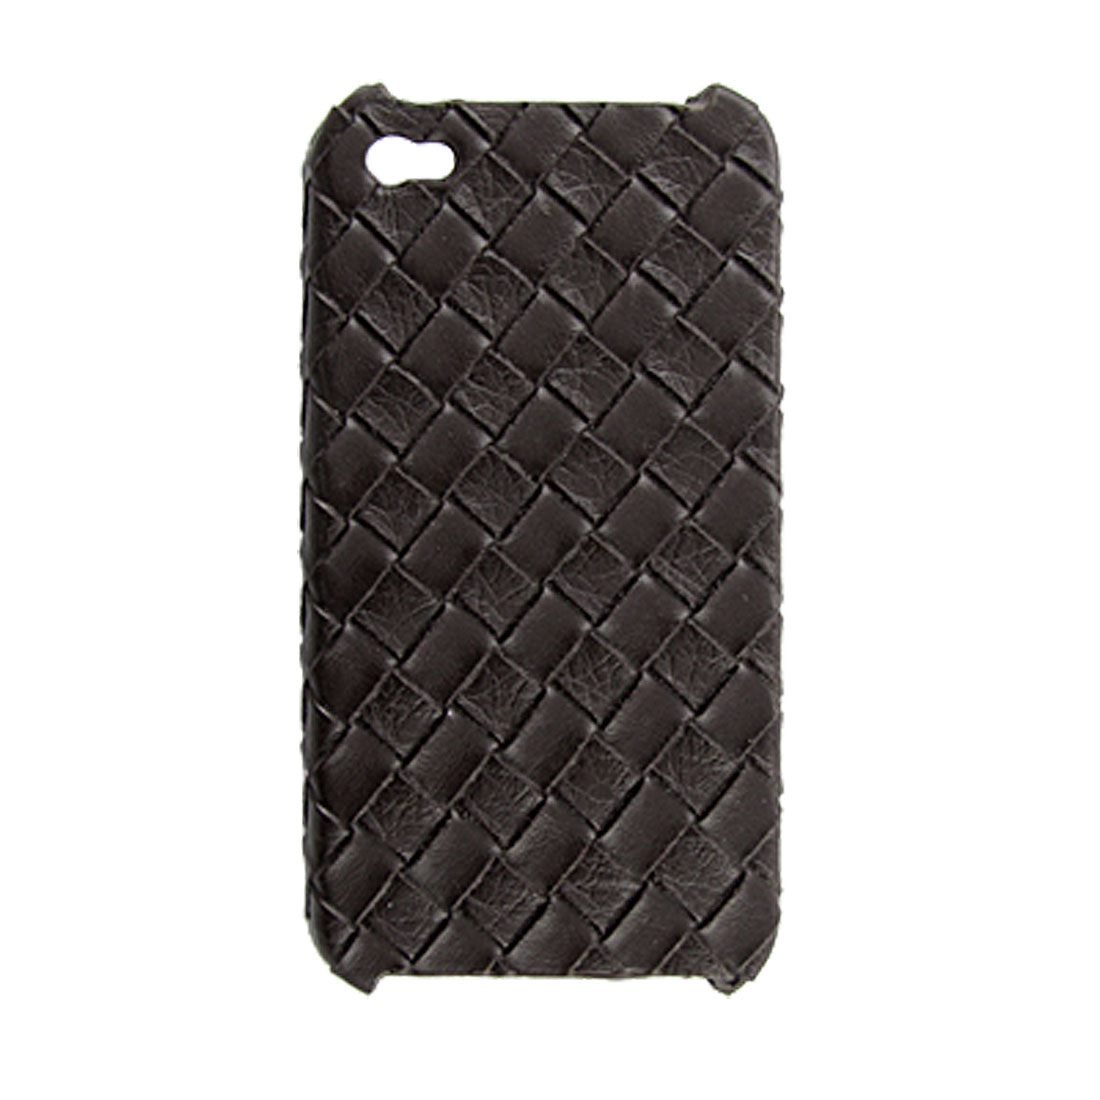 Faux Leather Coated Textured Hard Back Case Protector Brown for iPhone 4 4G